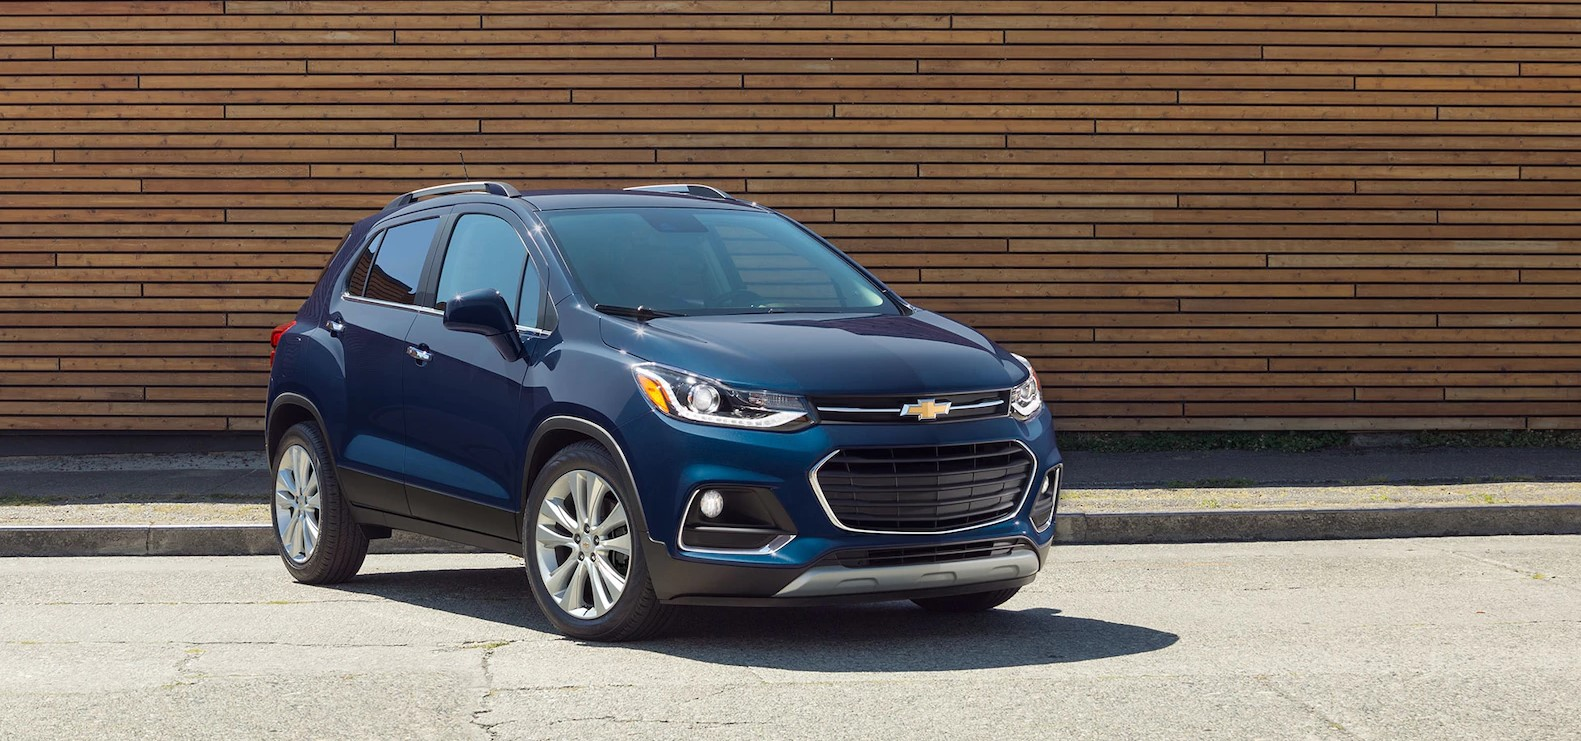 2018 Chevrolet Trax Blue Front Exterior